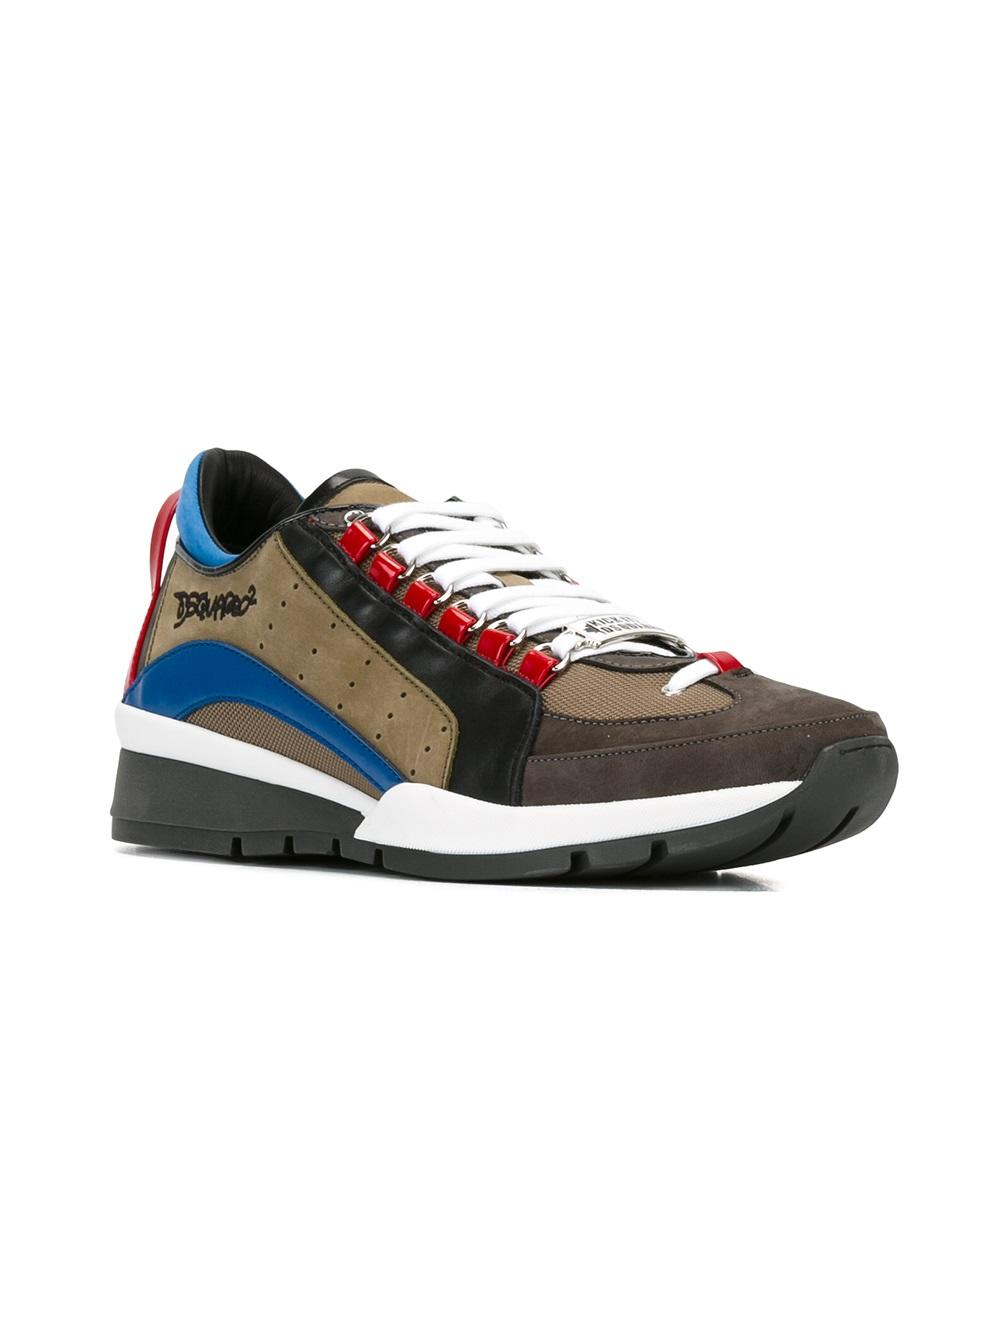 Sneakers homme dsquared